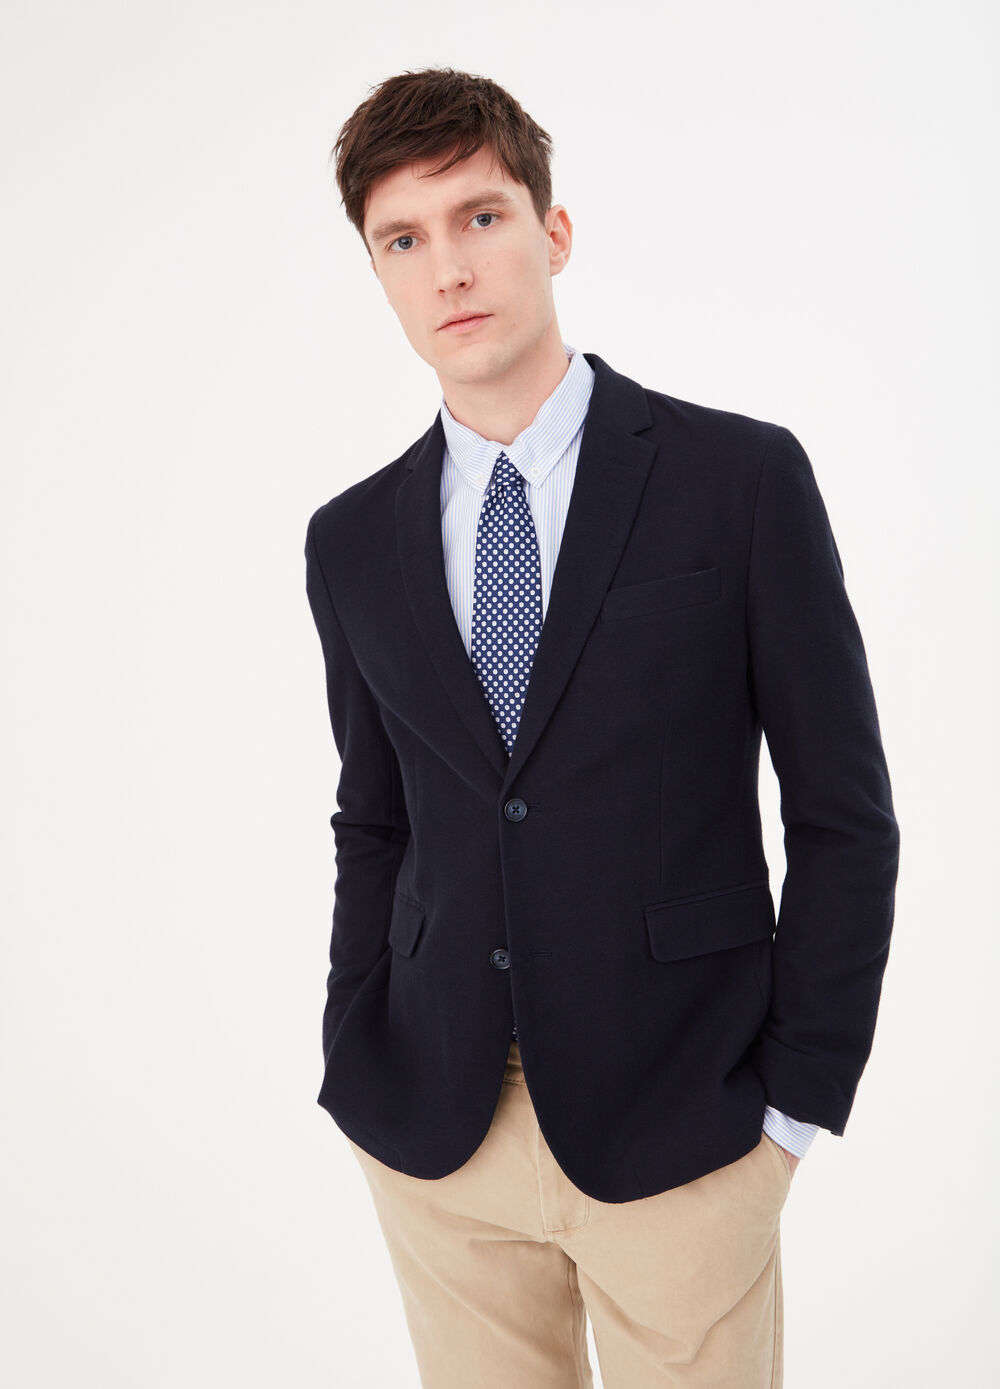 100% cotton blazer with two buttons